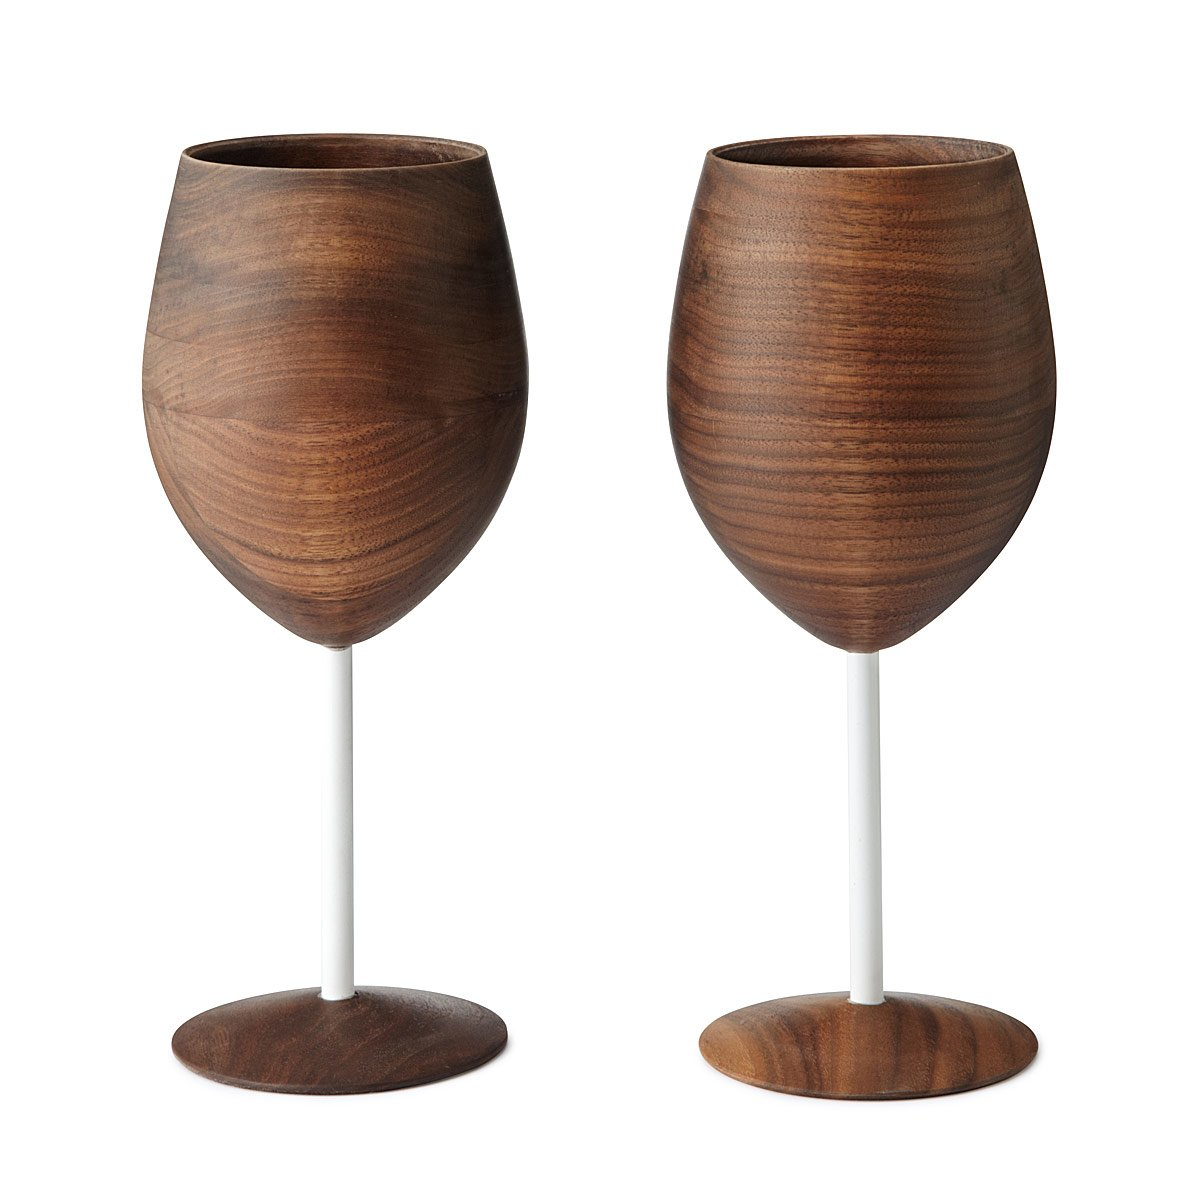 Image result for Wooden Wine Glasses review